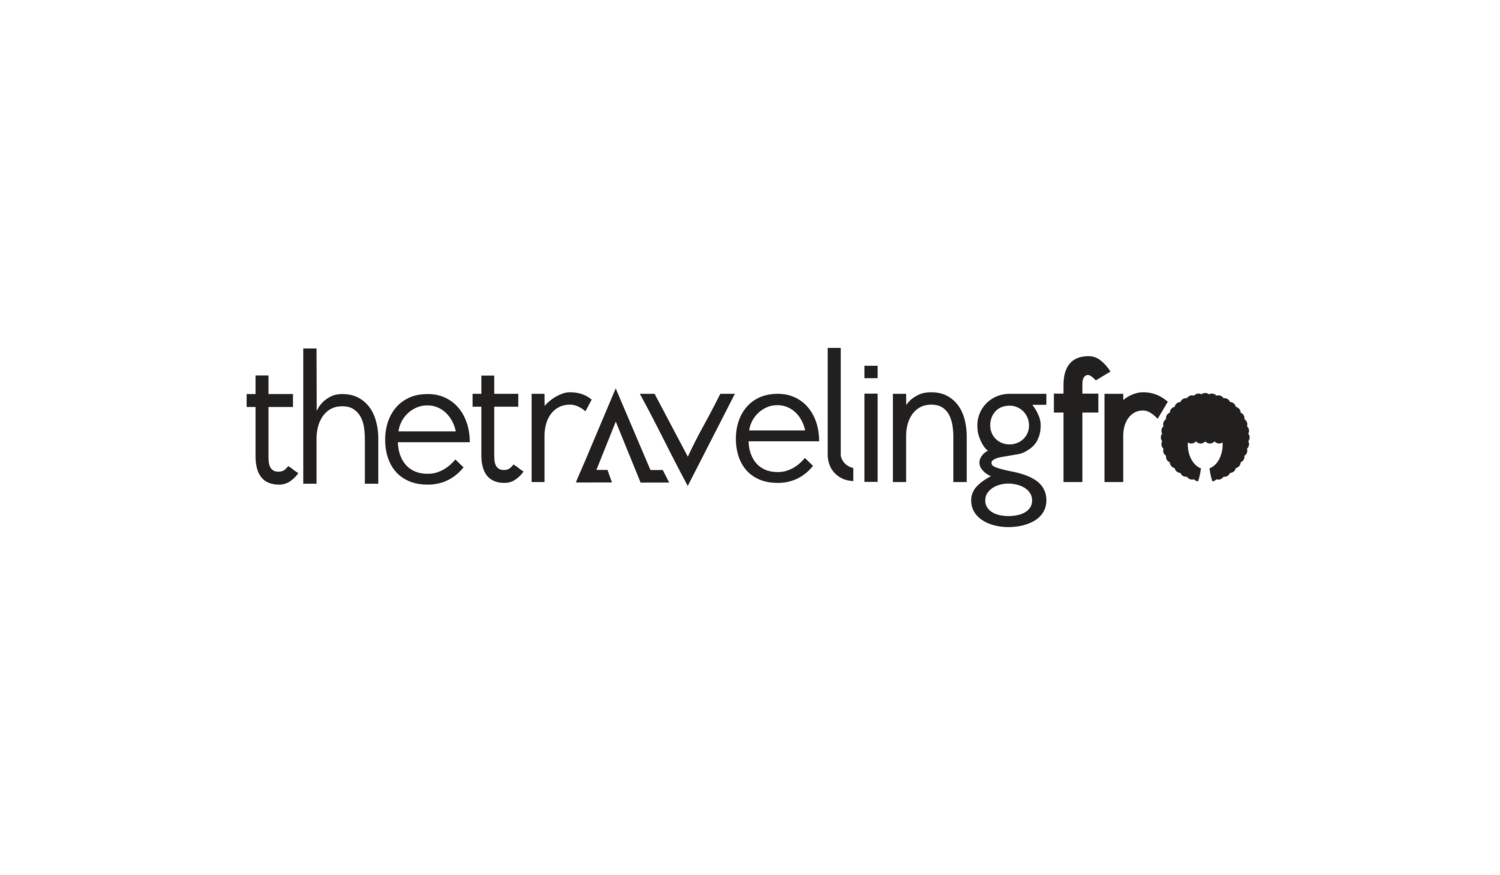 The Travelingfro |  Transformative Branding, Impact & Income